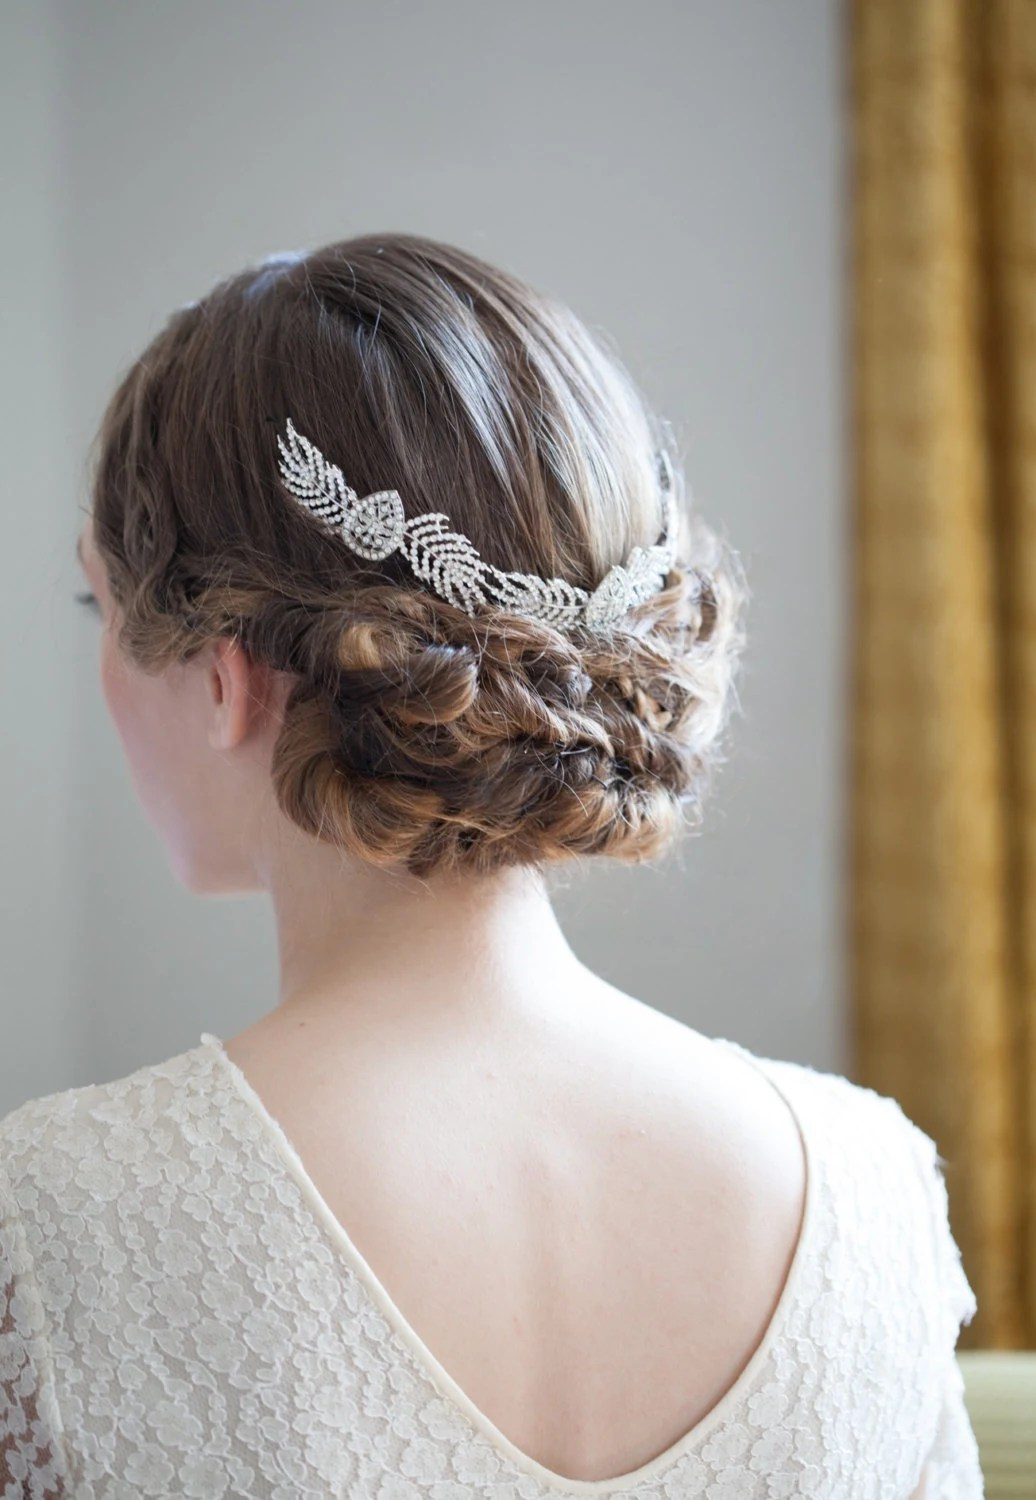 Grecian Bridal Headpiece Art Deco Wedding Hair Accessory